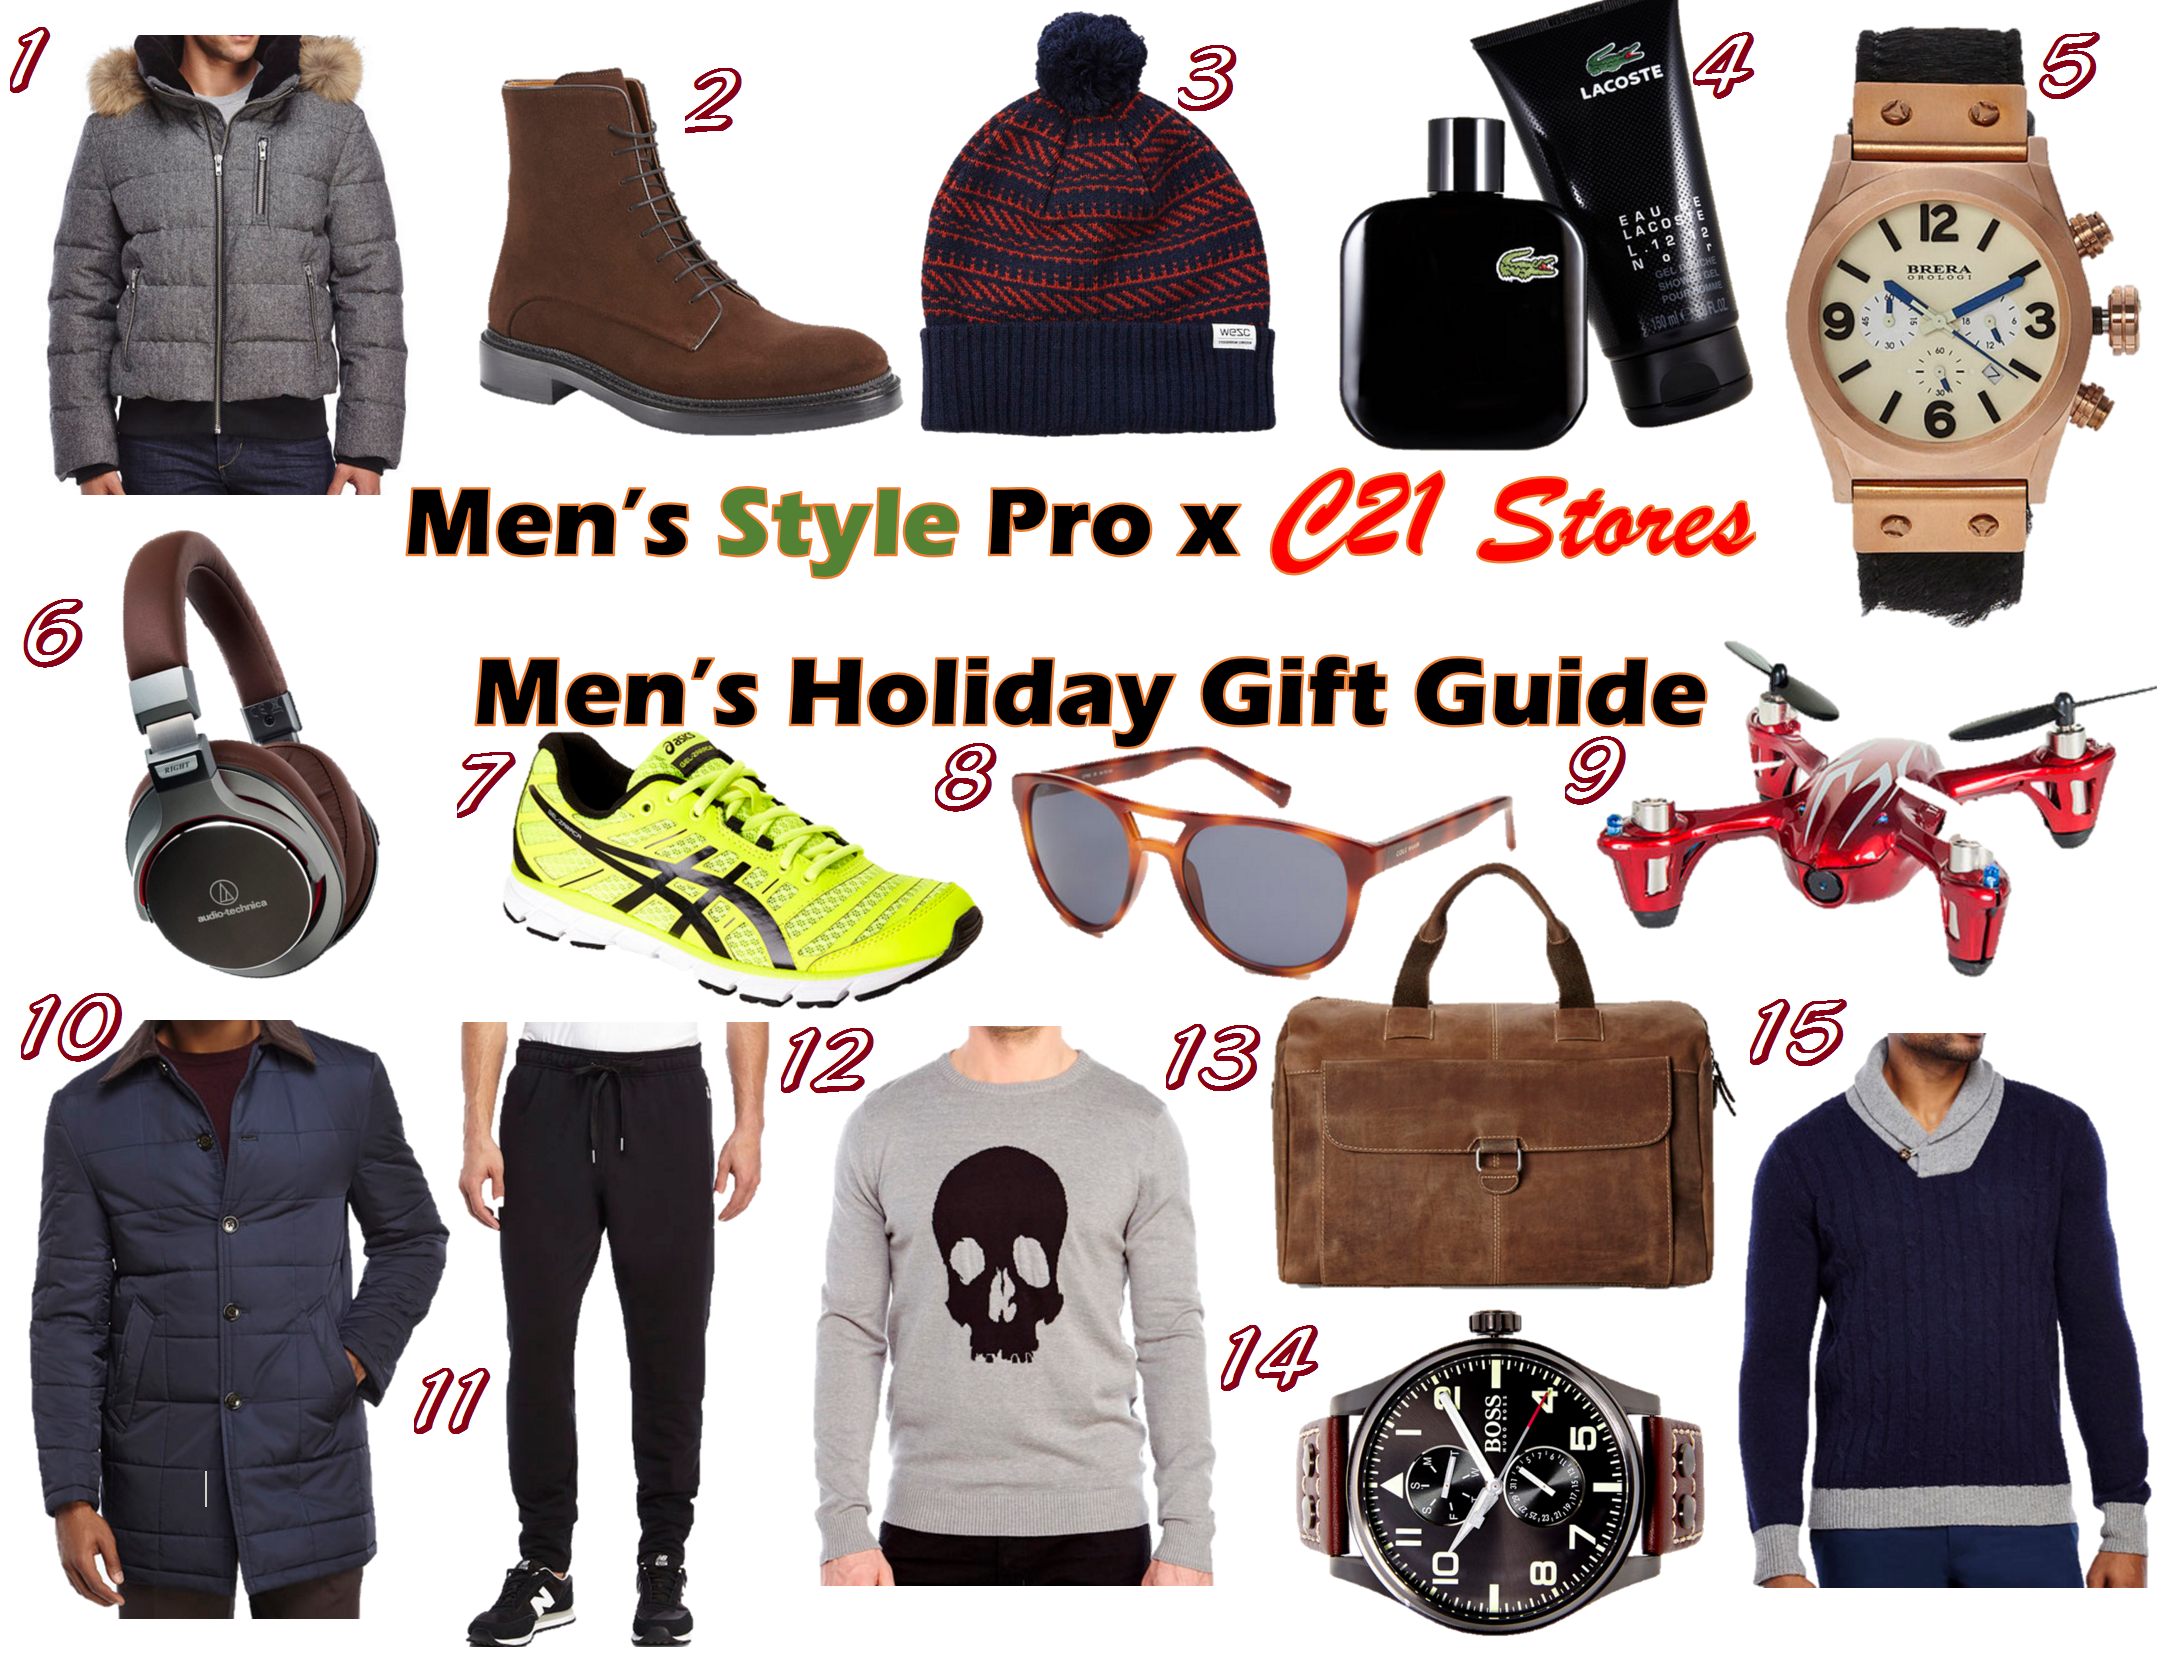 MSP x C21 Stores Men's Holiday Gift Guide Numbered